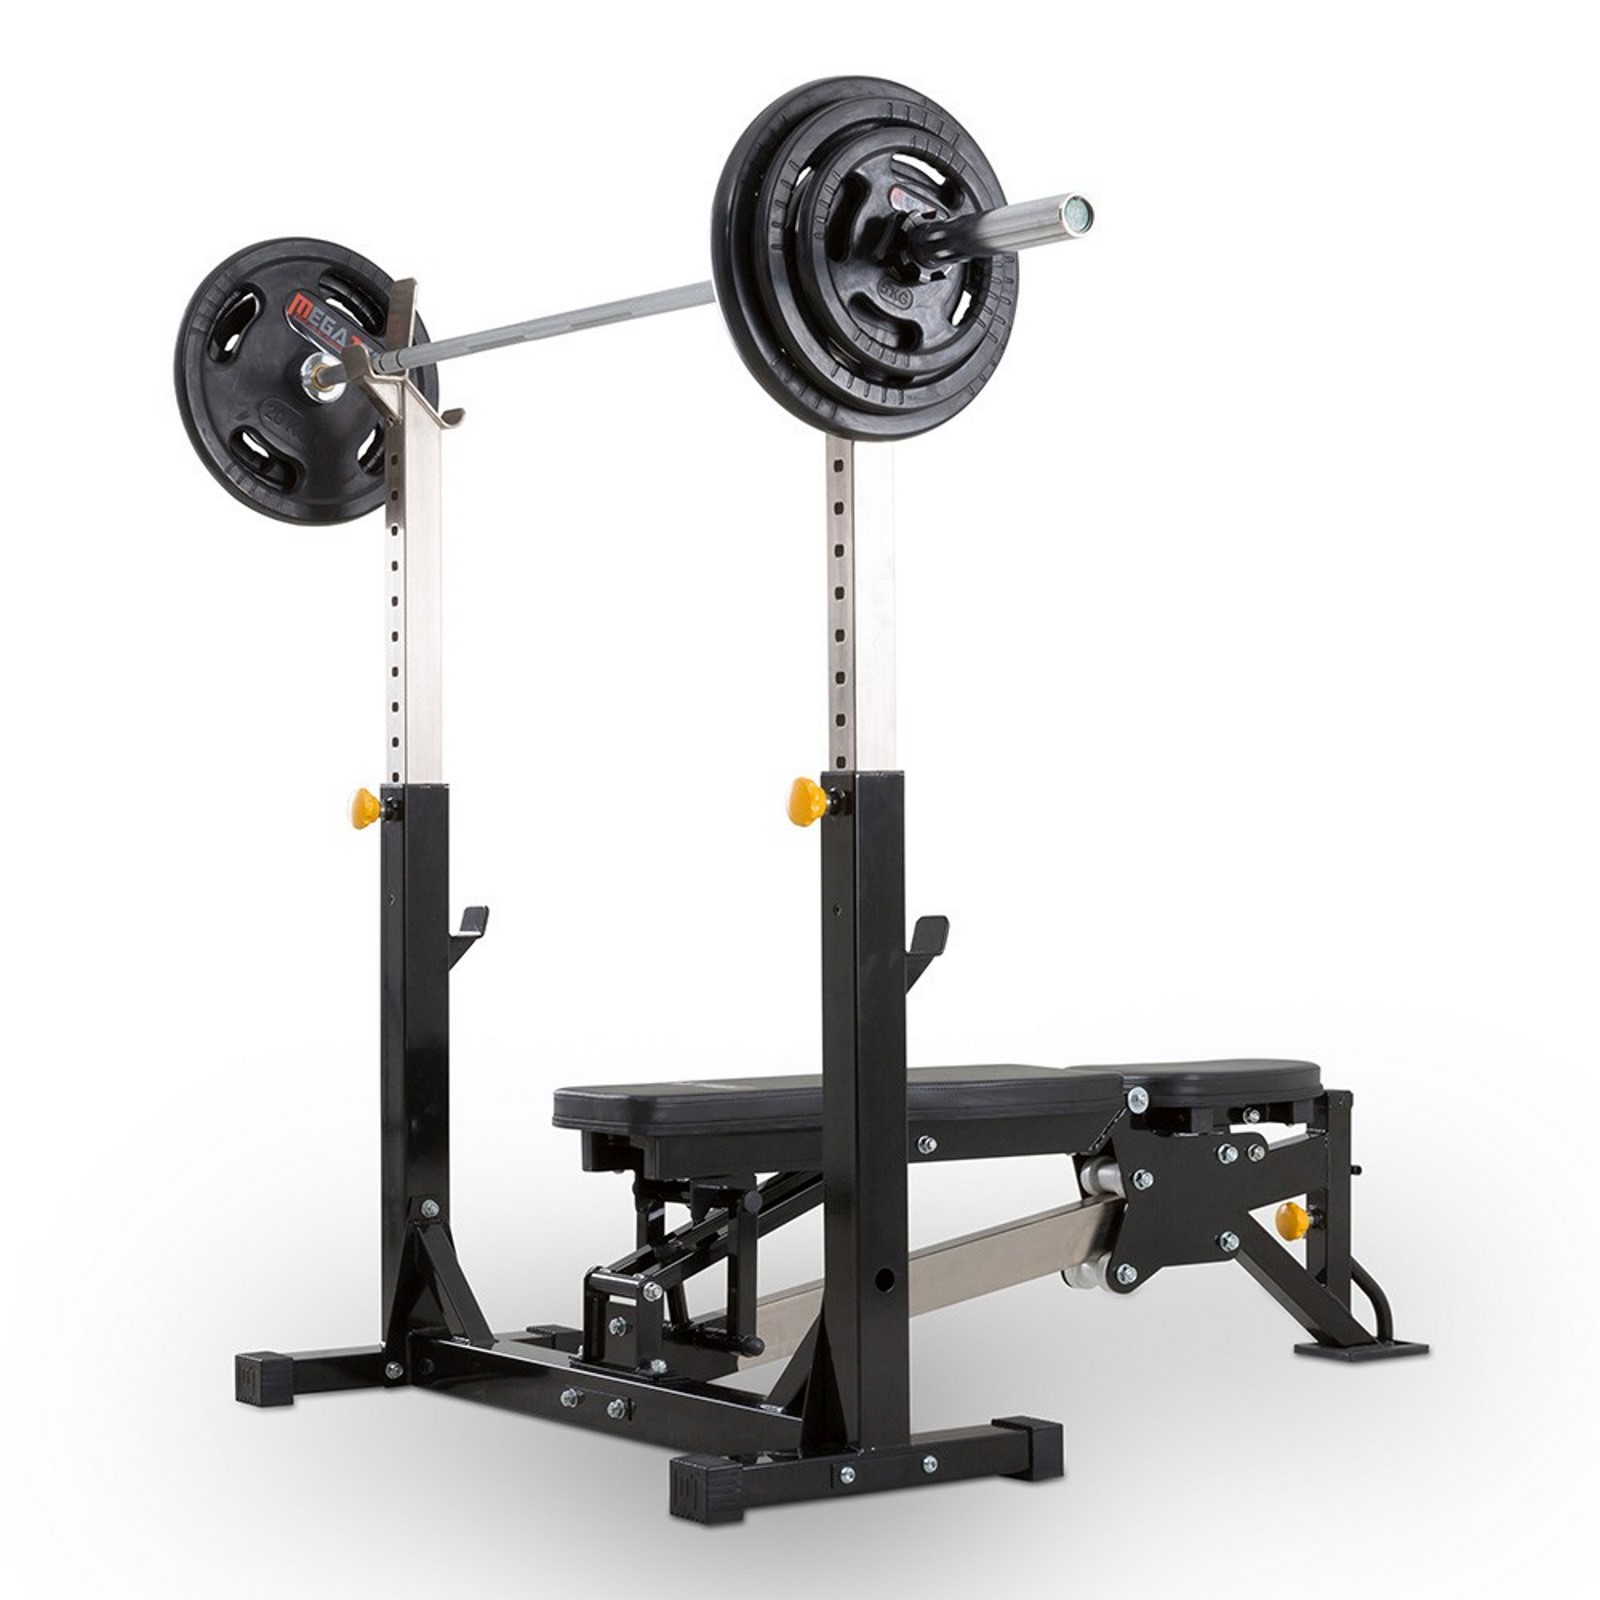 squat amazon rack bench lifting benches set with weight australia kmart